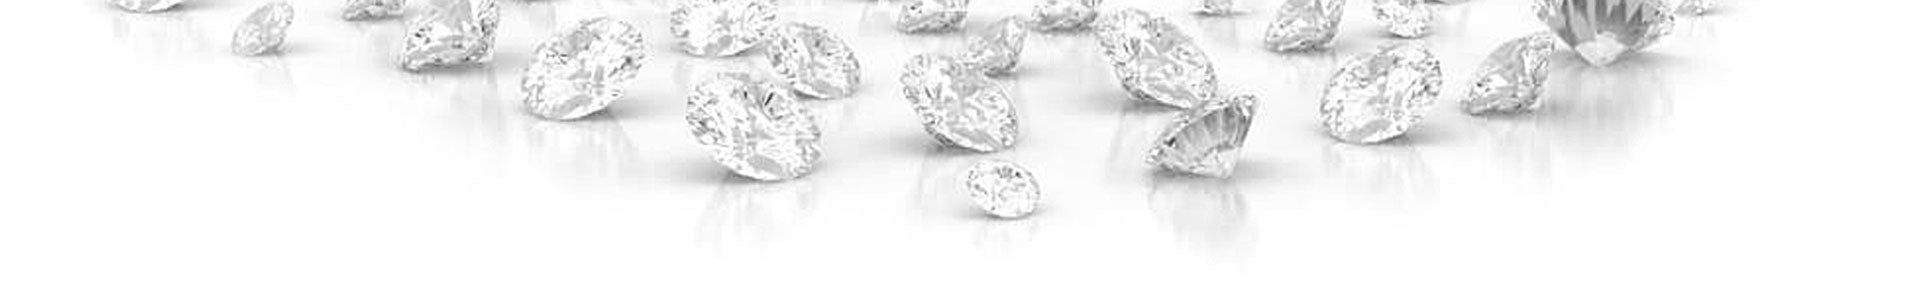 affordable middle diamond certified diamonds home search low discount loose